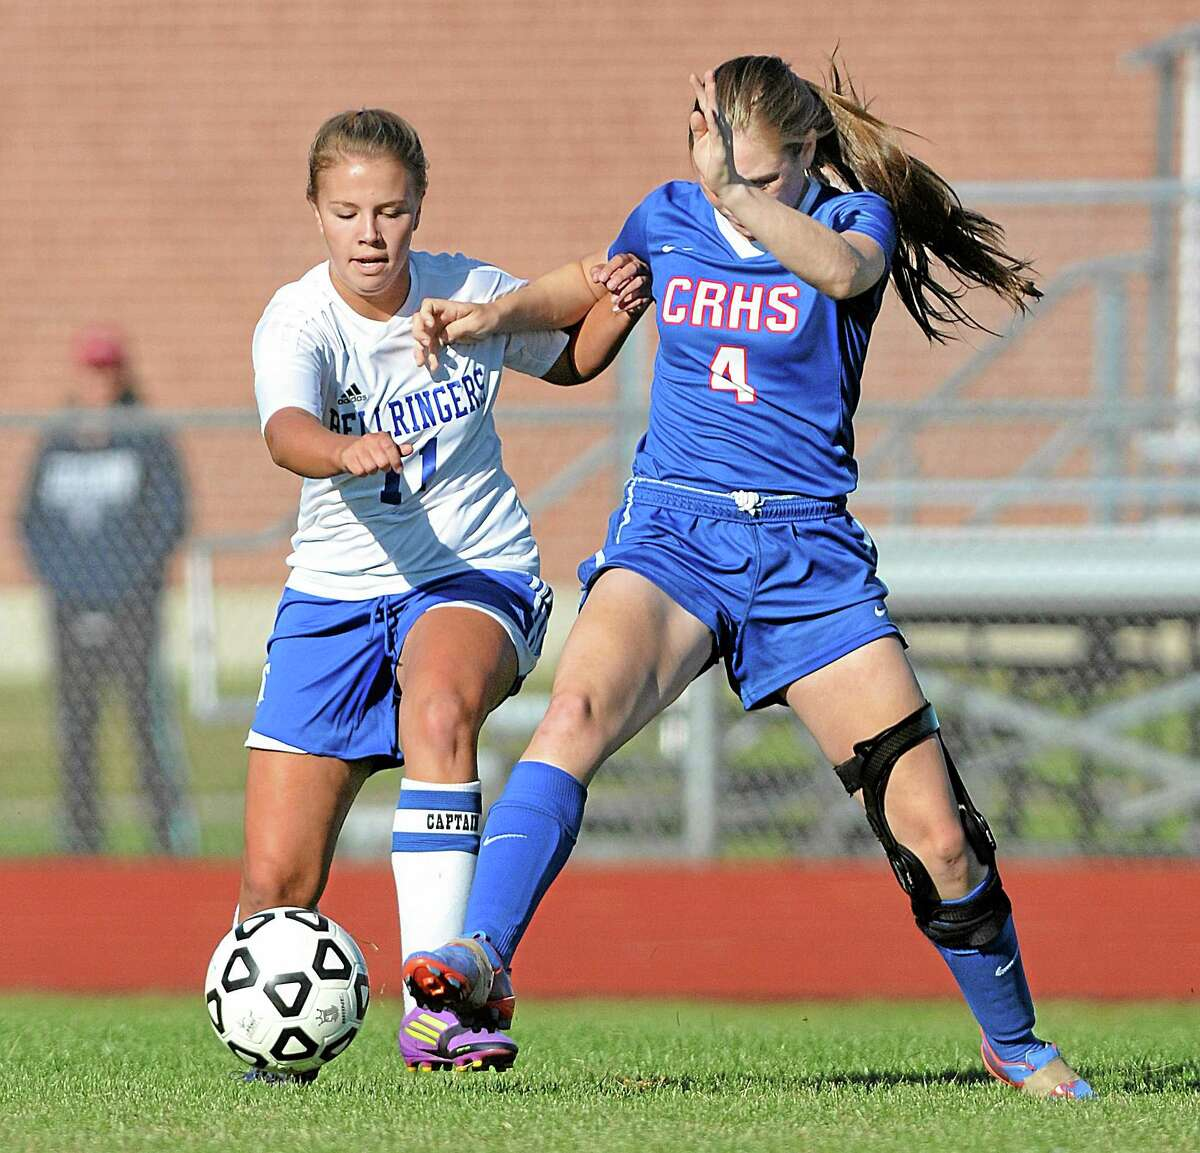 East Hampton captain Madison Germain battles Coginchaug's Alison Luther Monday afternoon in East Hampton. The Bellringers won 2-1 and remain undefeated leaving the Blue Devils with their first loss of the season.